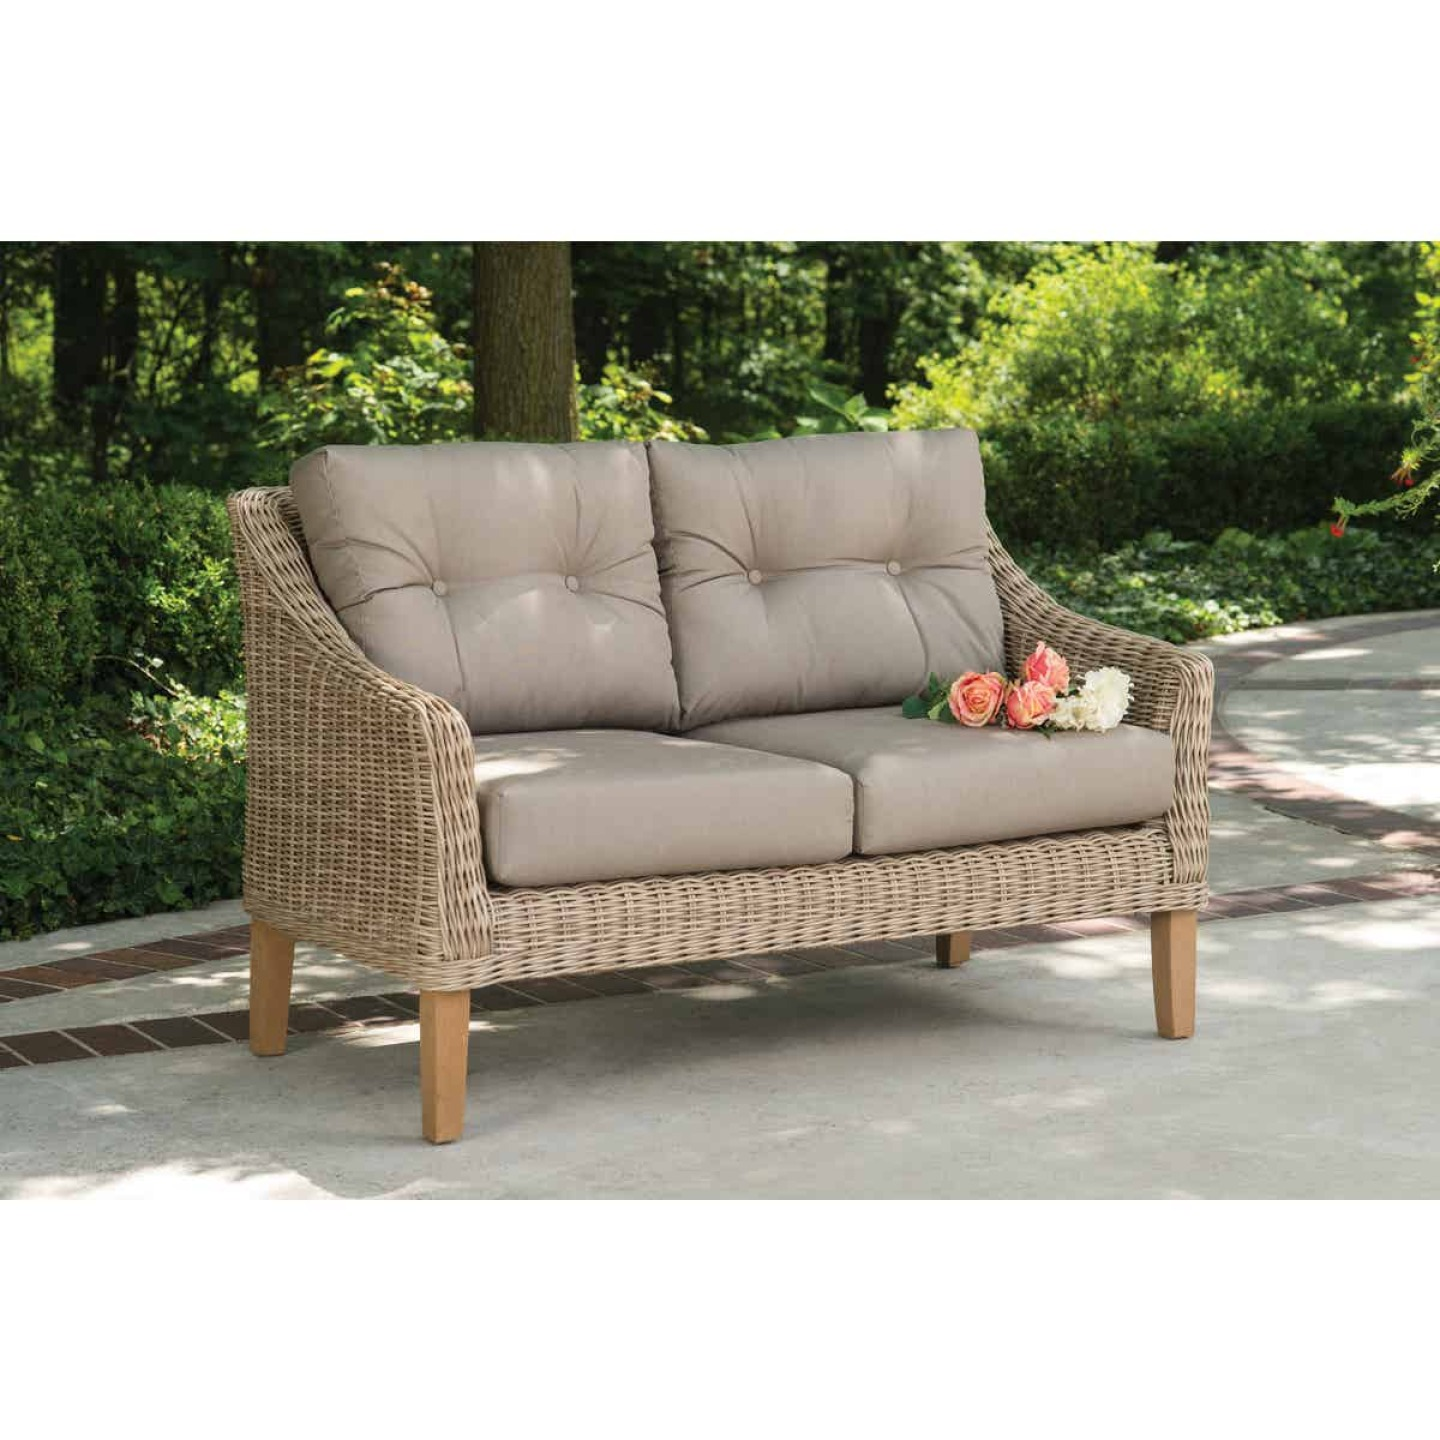 Cambria 2-Person 51 In. W. x 31 In. H. x 29 In. D. Wicker Loveseat Image 3